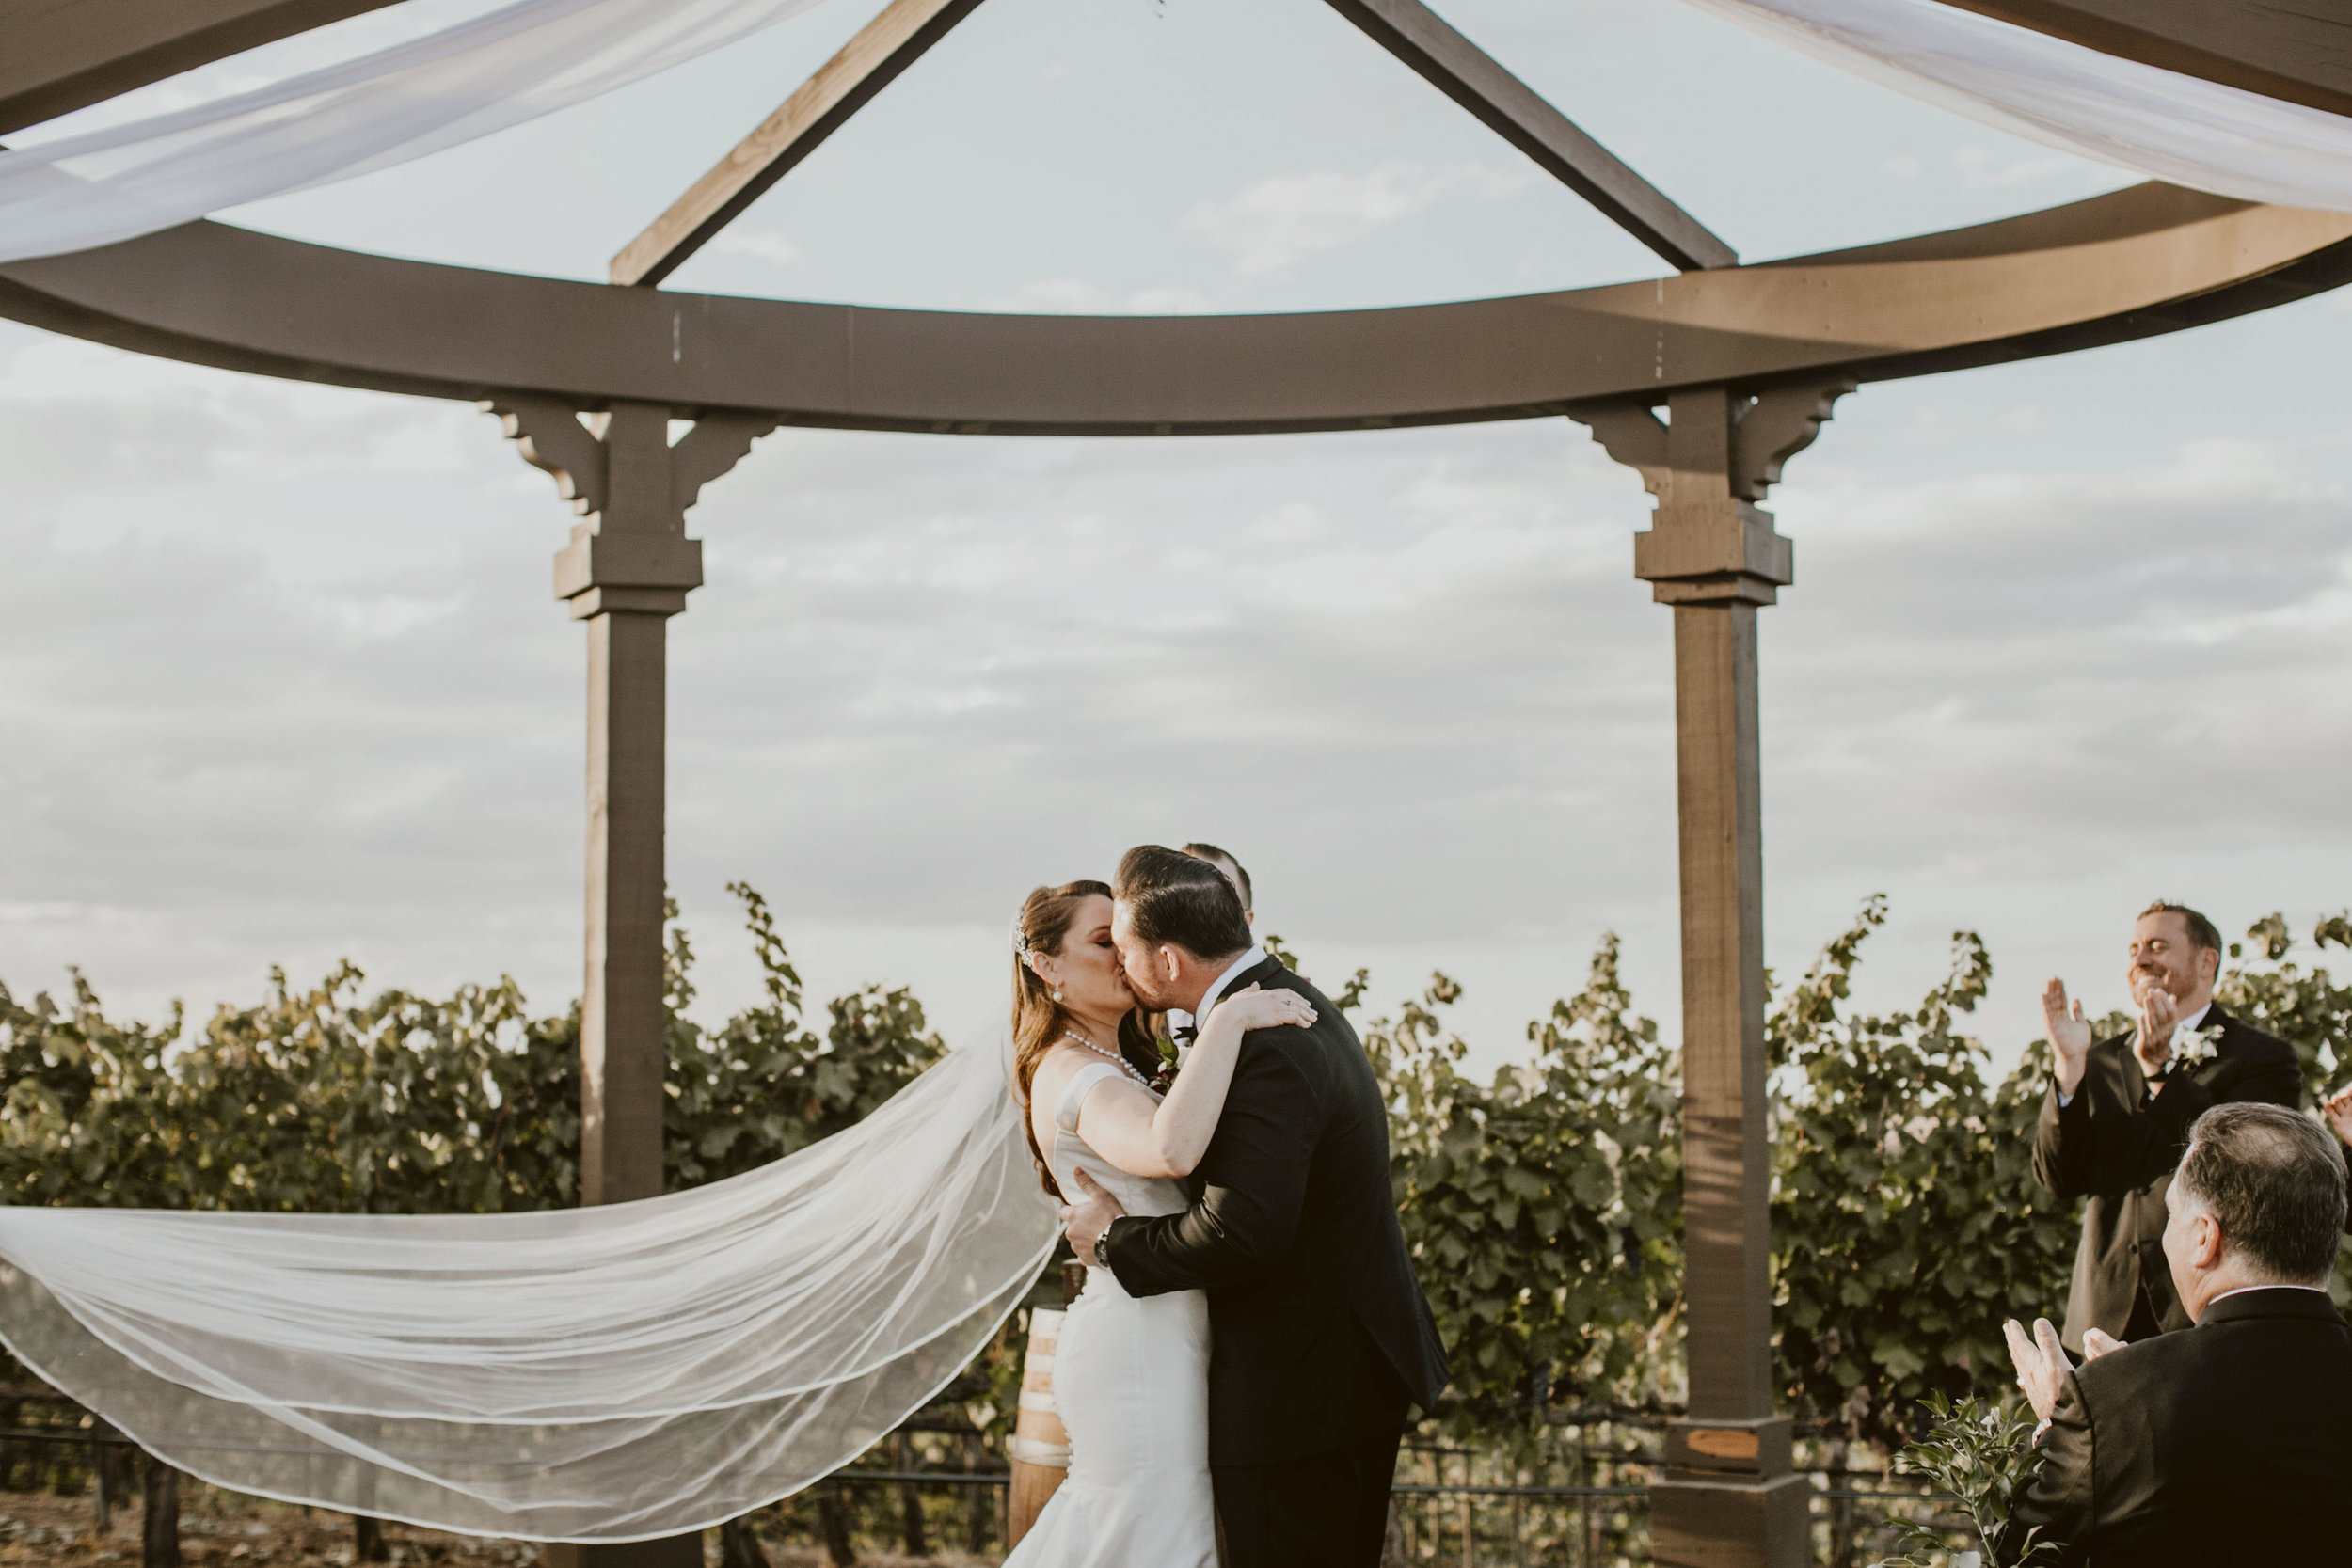 Domenica Beauty _ Hair and Makeup Artist _Wedding _ Temecula, CA _ Catherine and Darryl _ 23.JPG